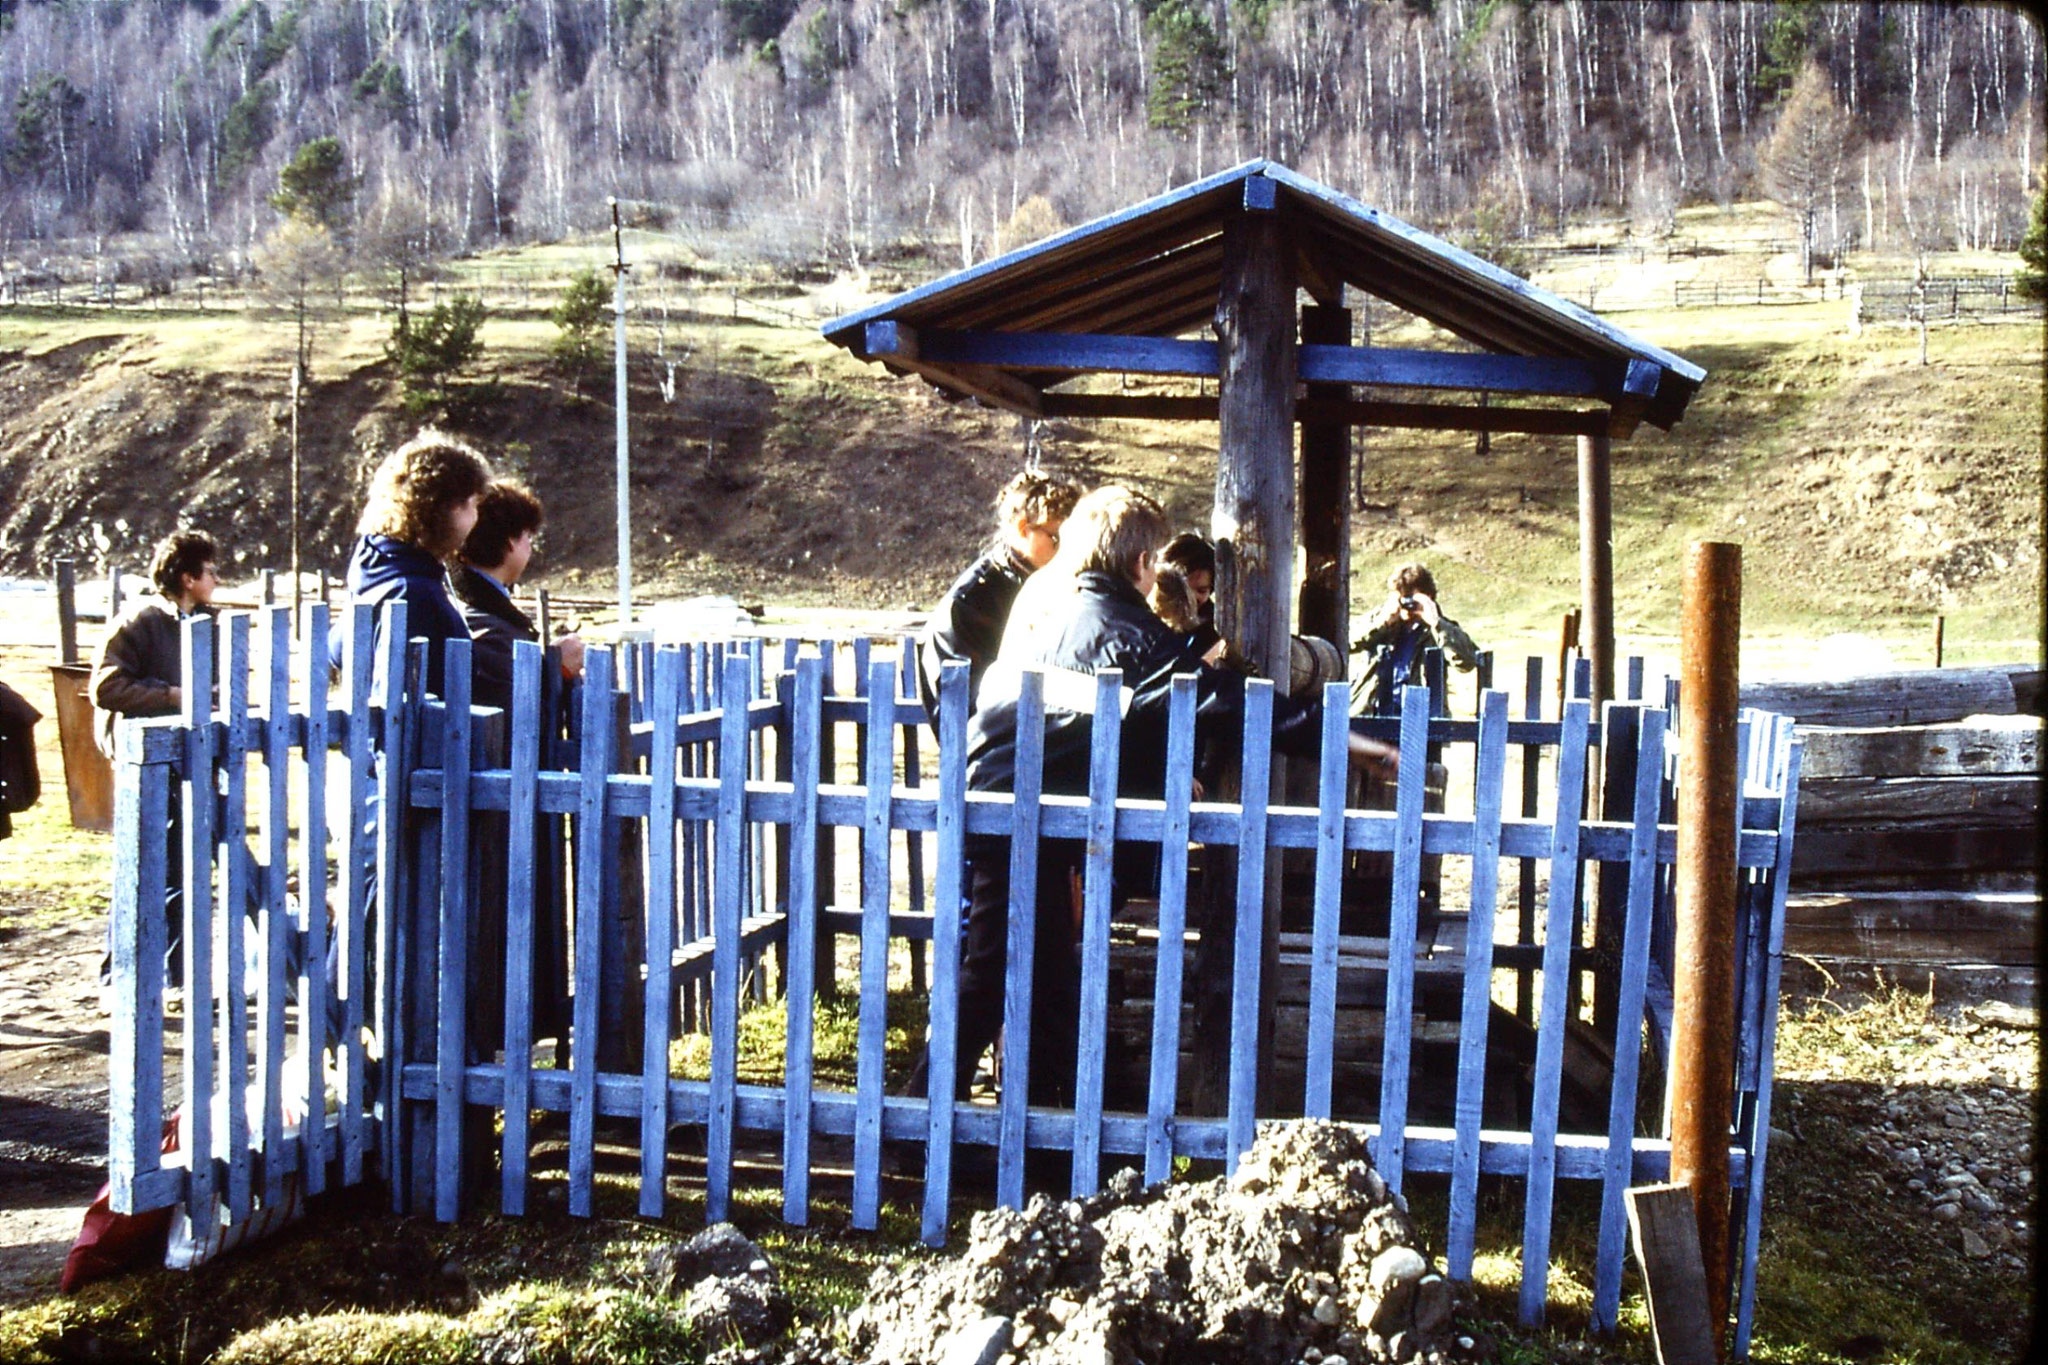 23/10/1988: 31: Lake Baikal Listvyanka well